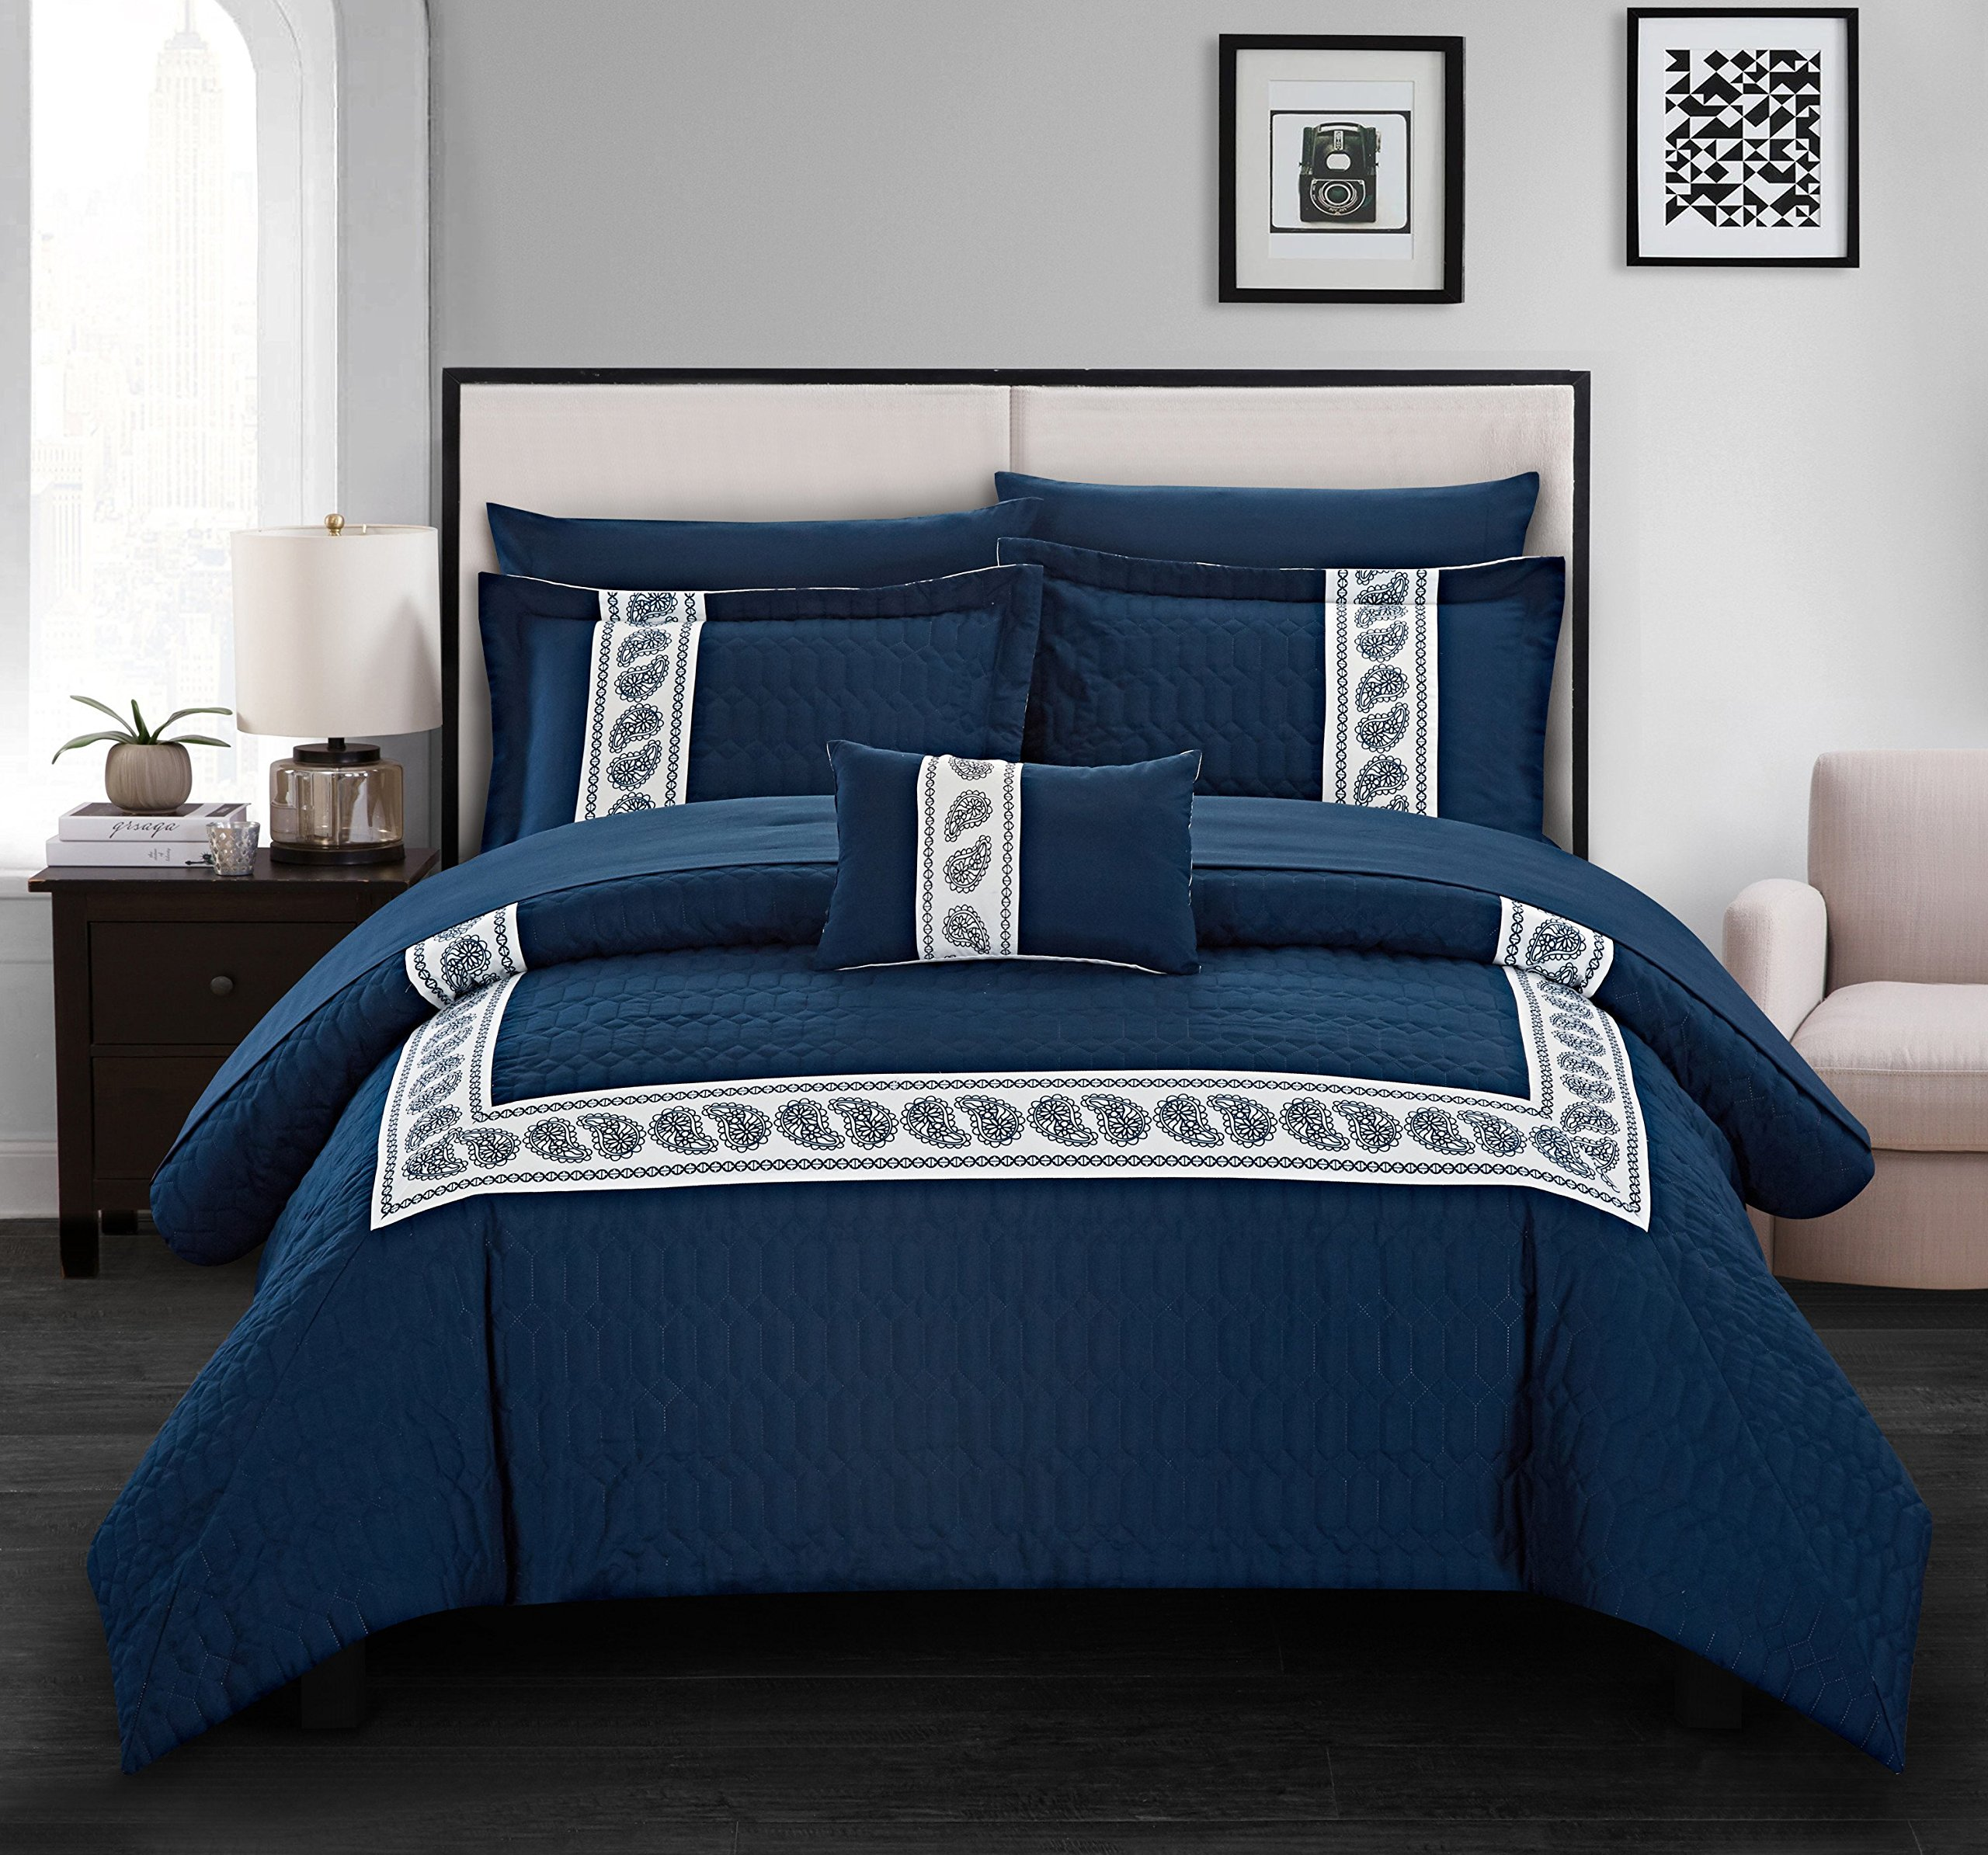 Chic Home Titian 8 Piece Comforter Hotel Collection Hexagon Embossed Paisley Print Border Design Bed in a Bag-Sheet Set Decorative Pillow Shams Included, Queen, Navy